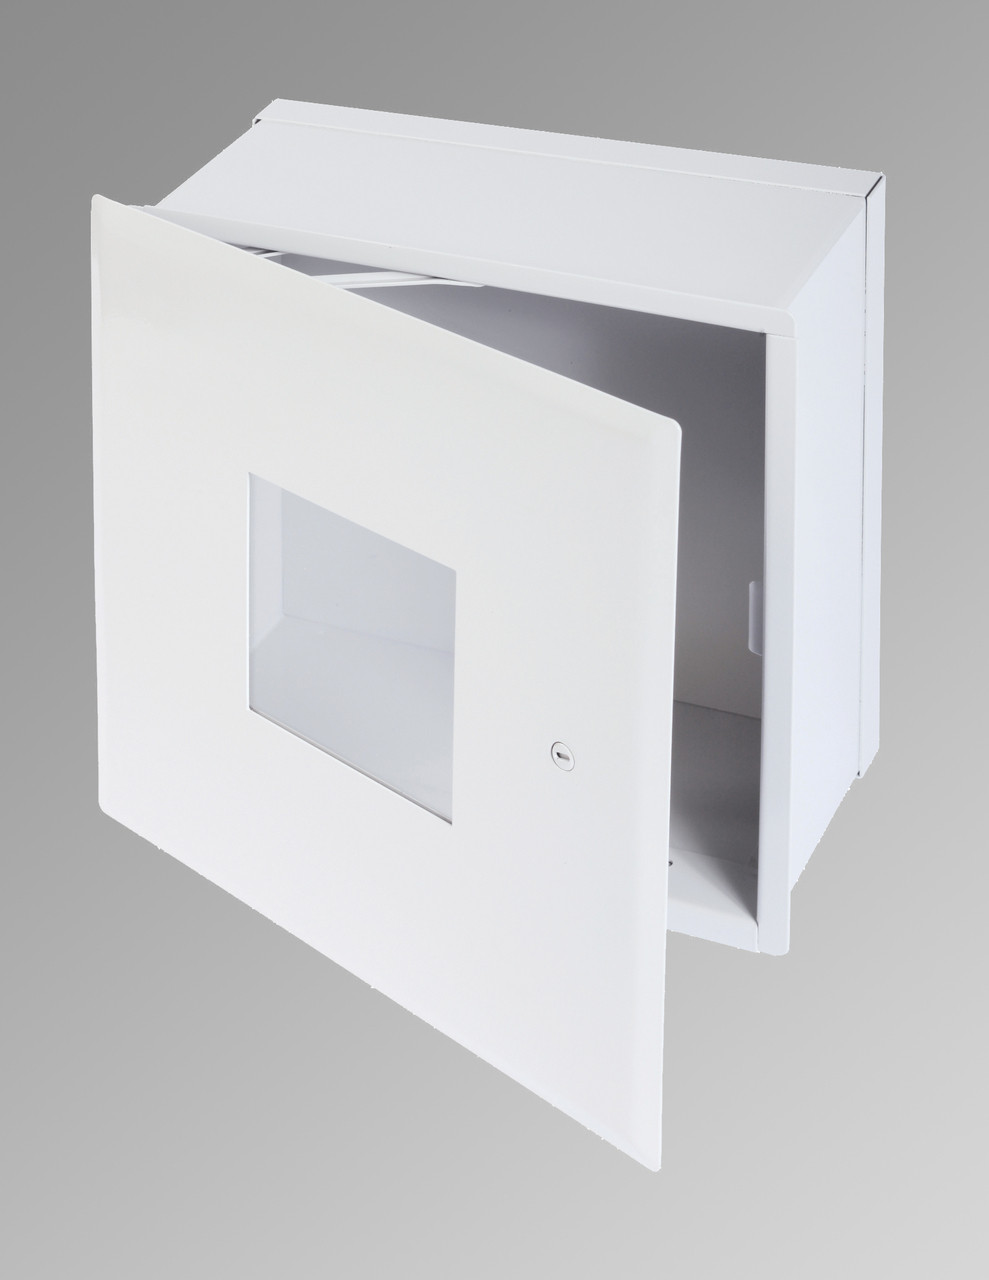 16 Quot X 16 Quot Valve Box With Window And Hidden Flange